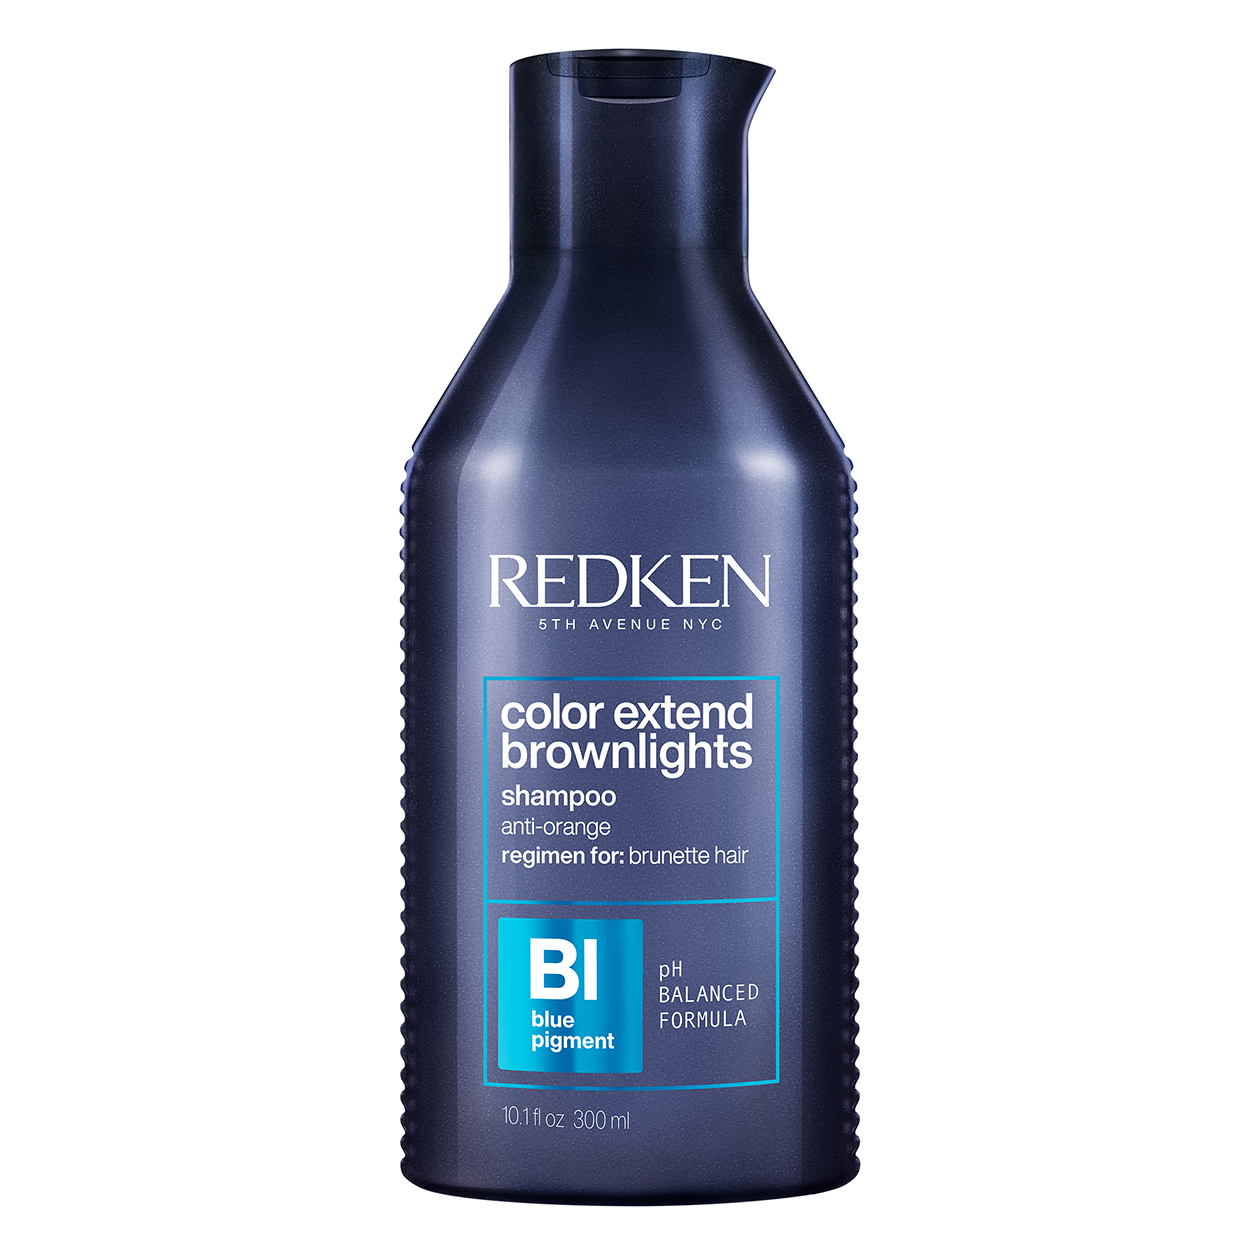 Redken-2019-NA-Color-Extend-Brownlights-Shampoo-Product-Shot-Blue-1260x1600